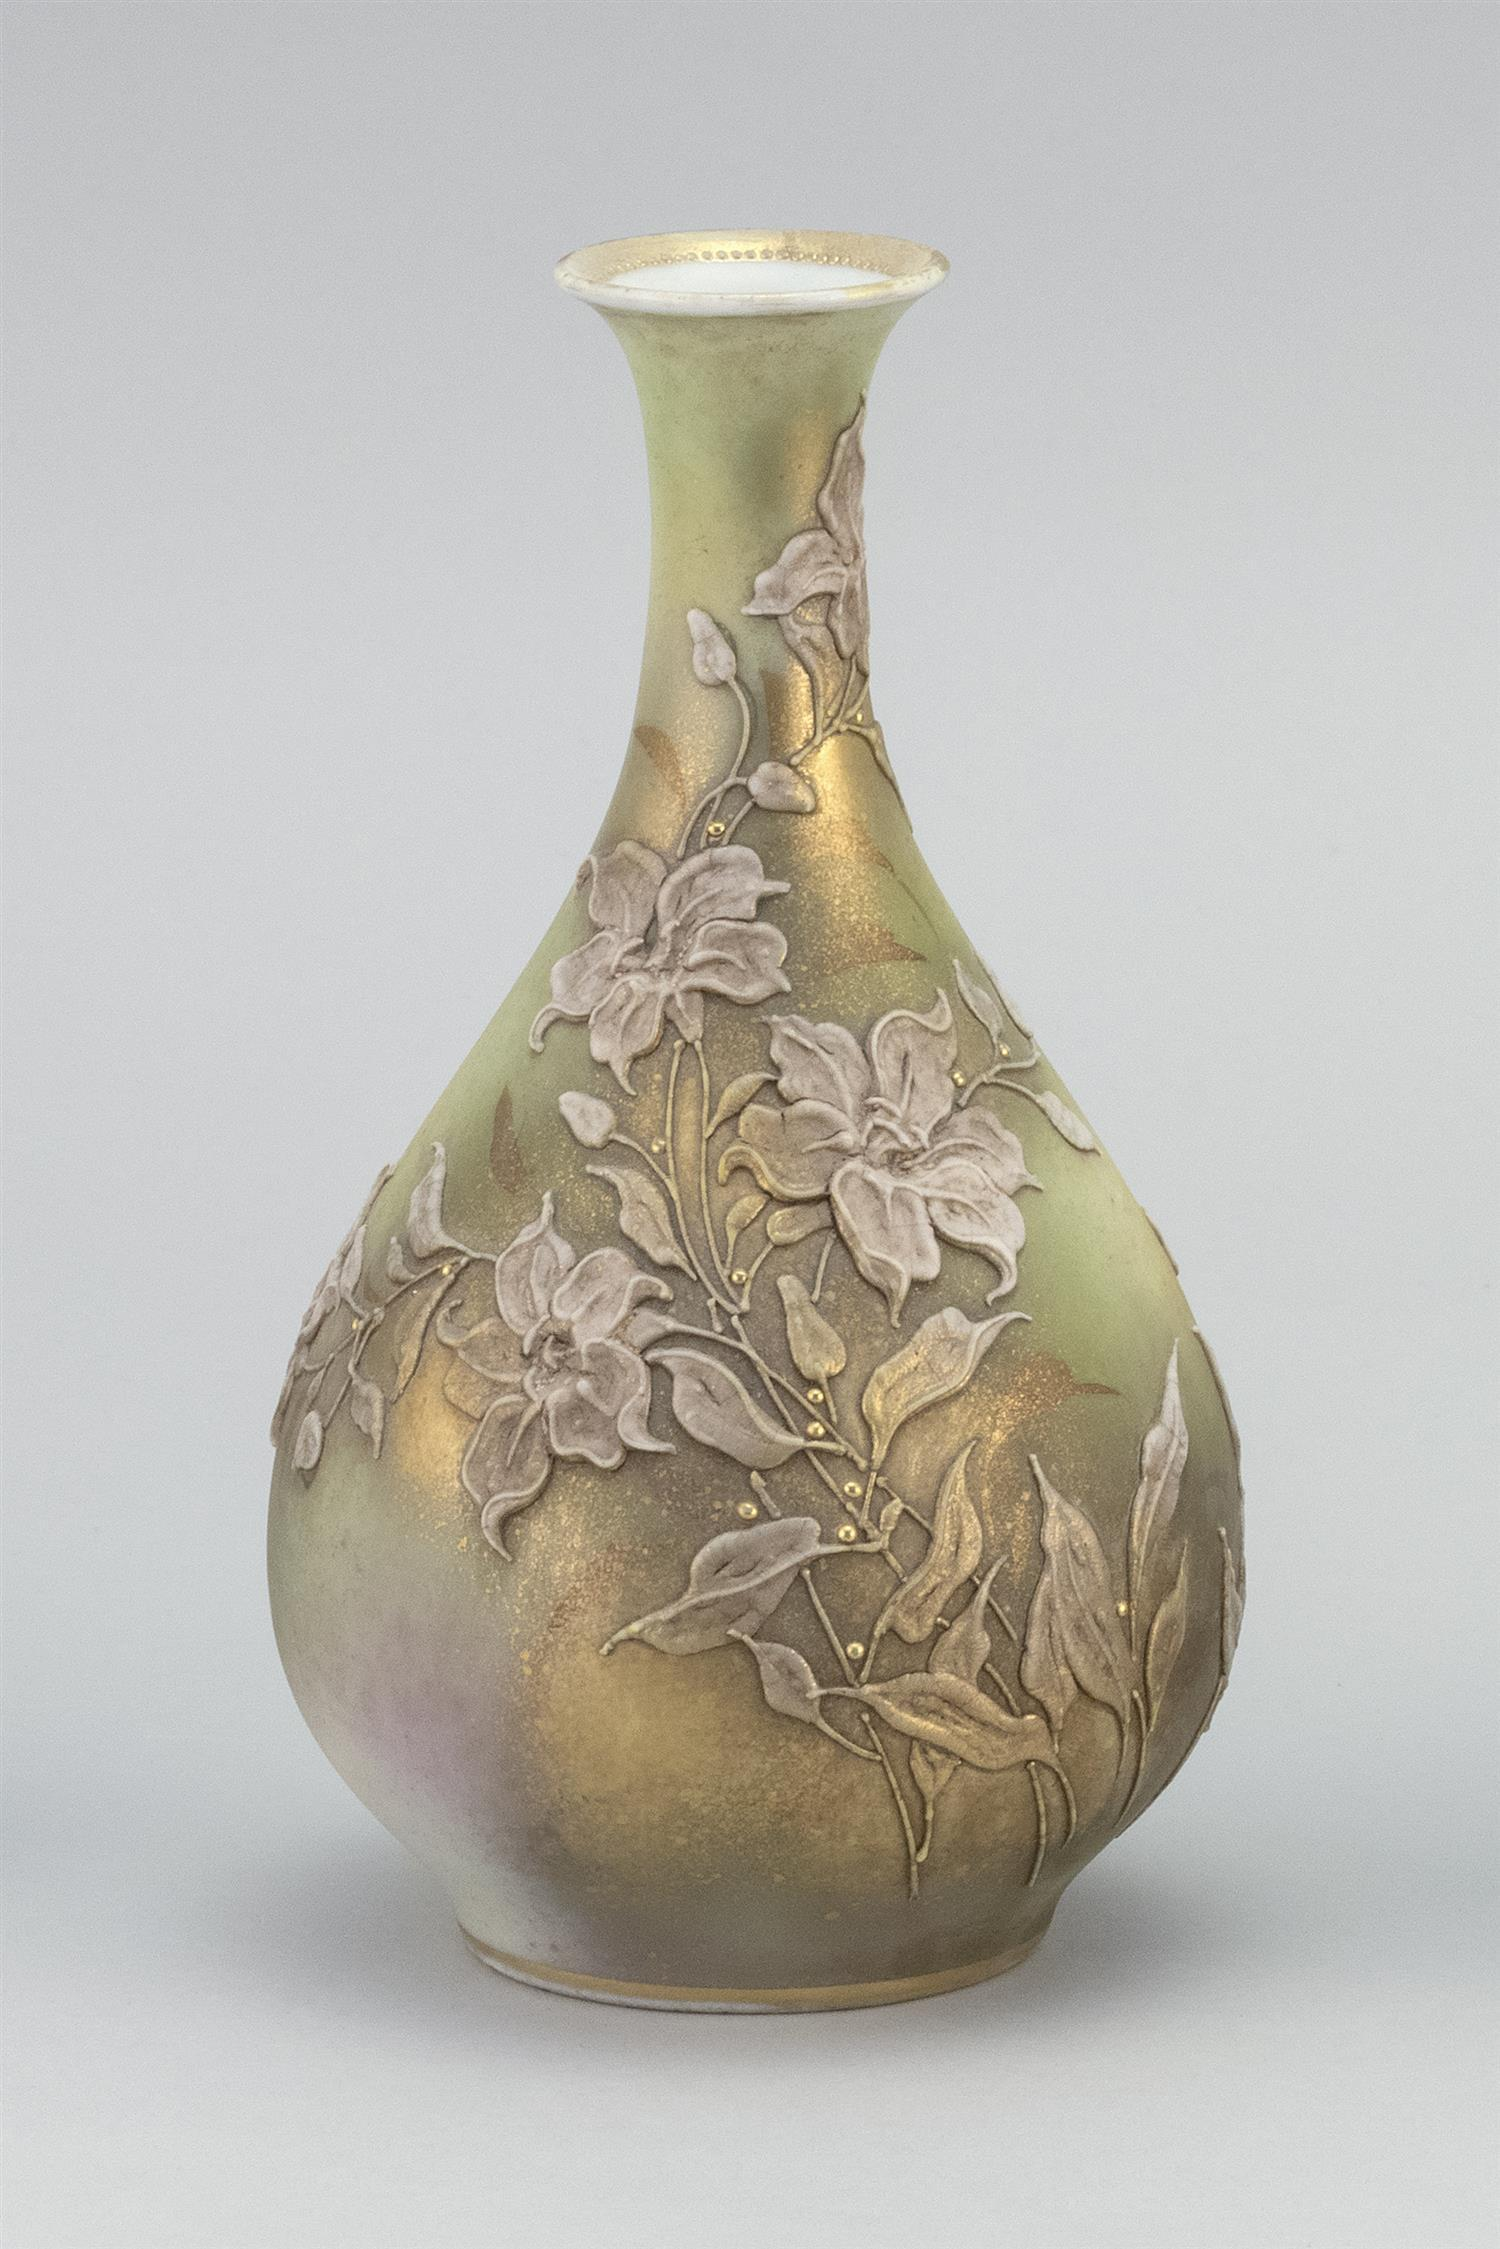 "MORIAGE NIPPON PORCELAIN VASE In bladder form, with a lily design on a green ground. Van Patten #52 mark on base. Height 7""."